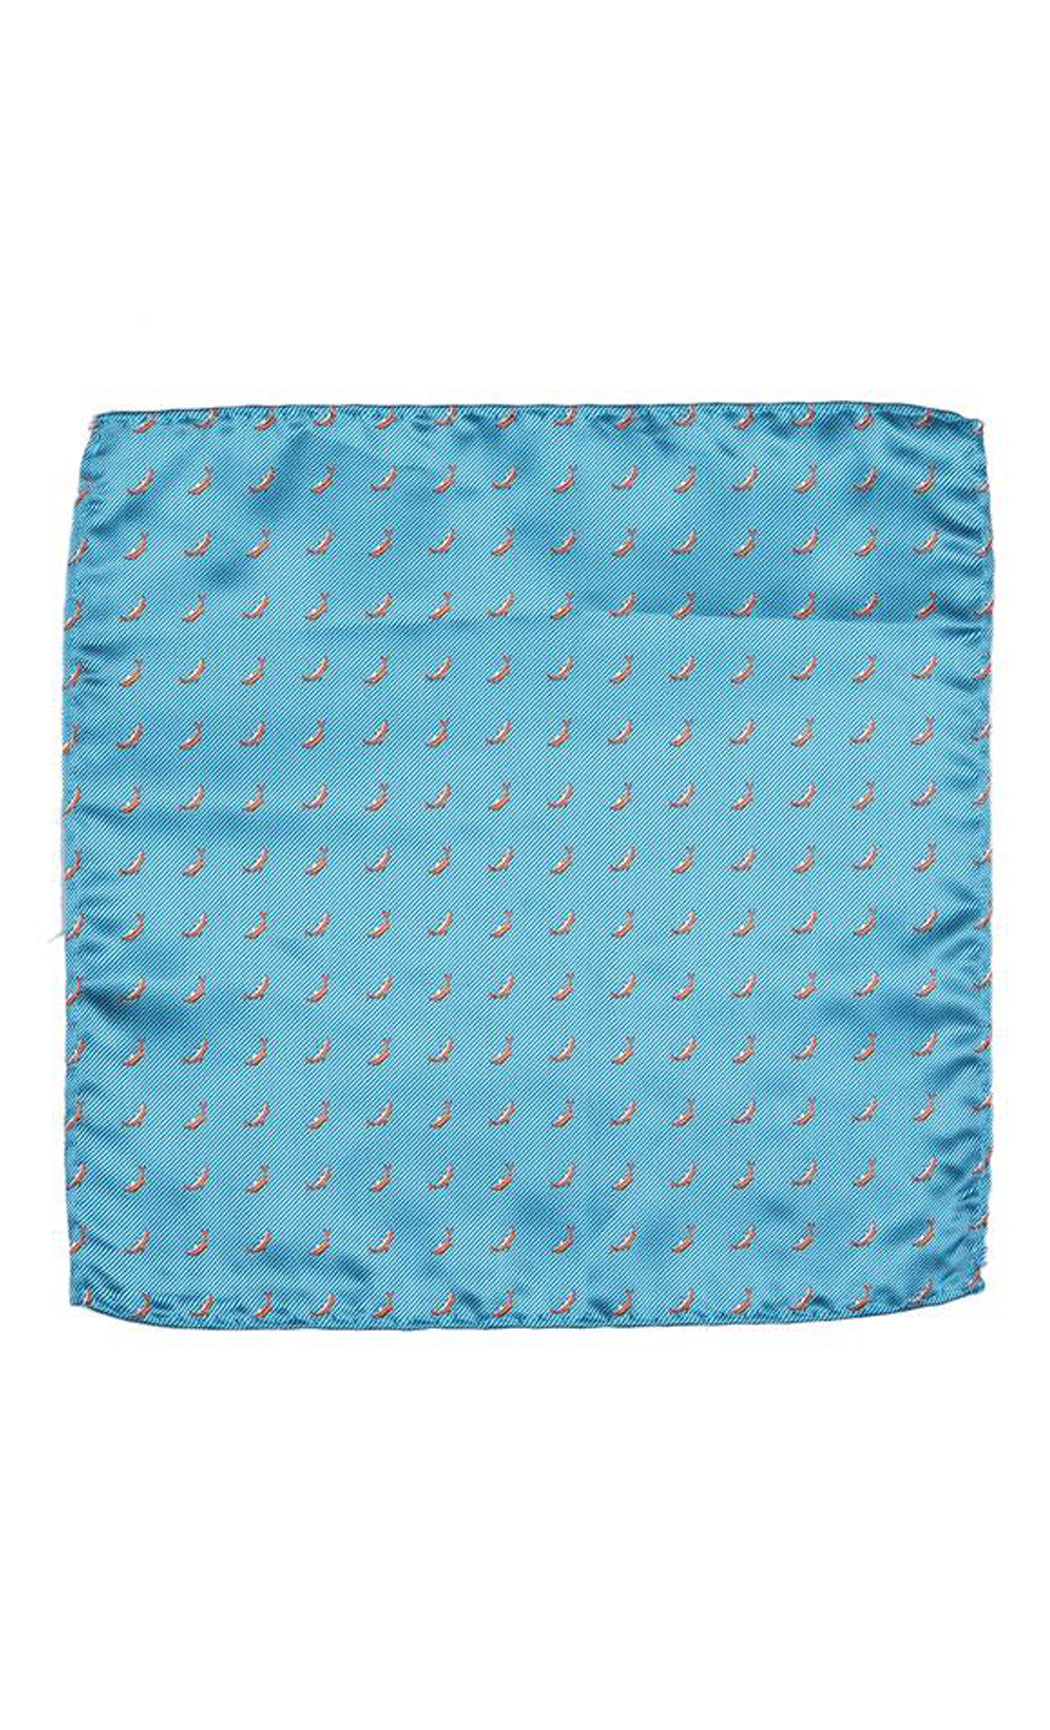 Turquoise Dolphin Woven Pocket Square. Buy Online